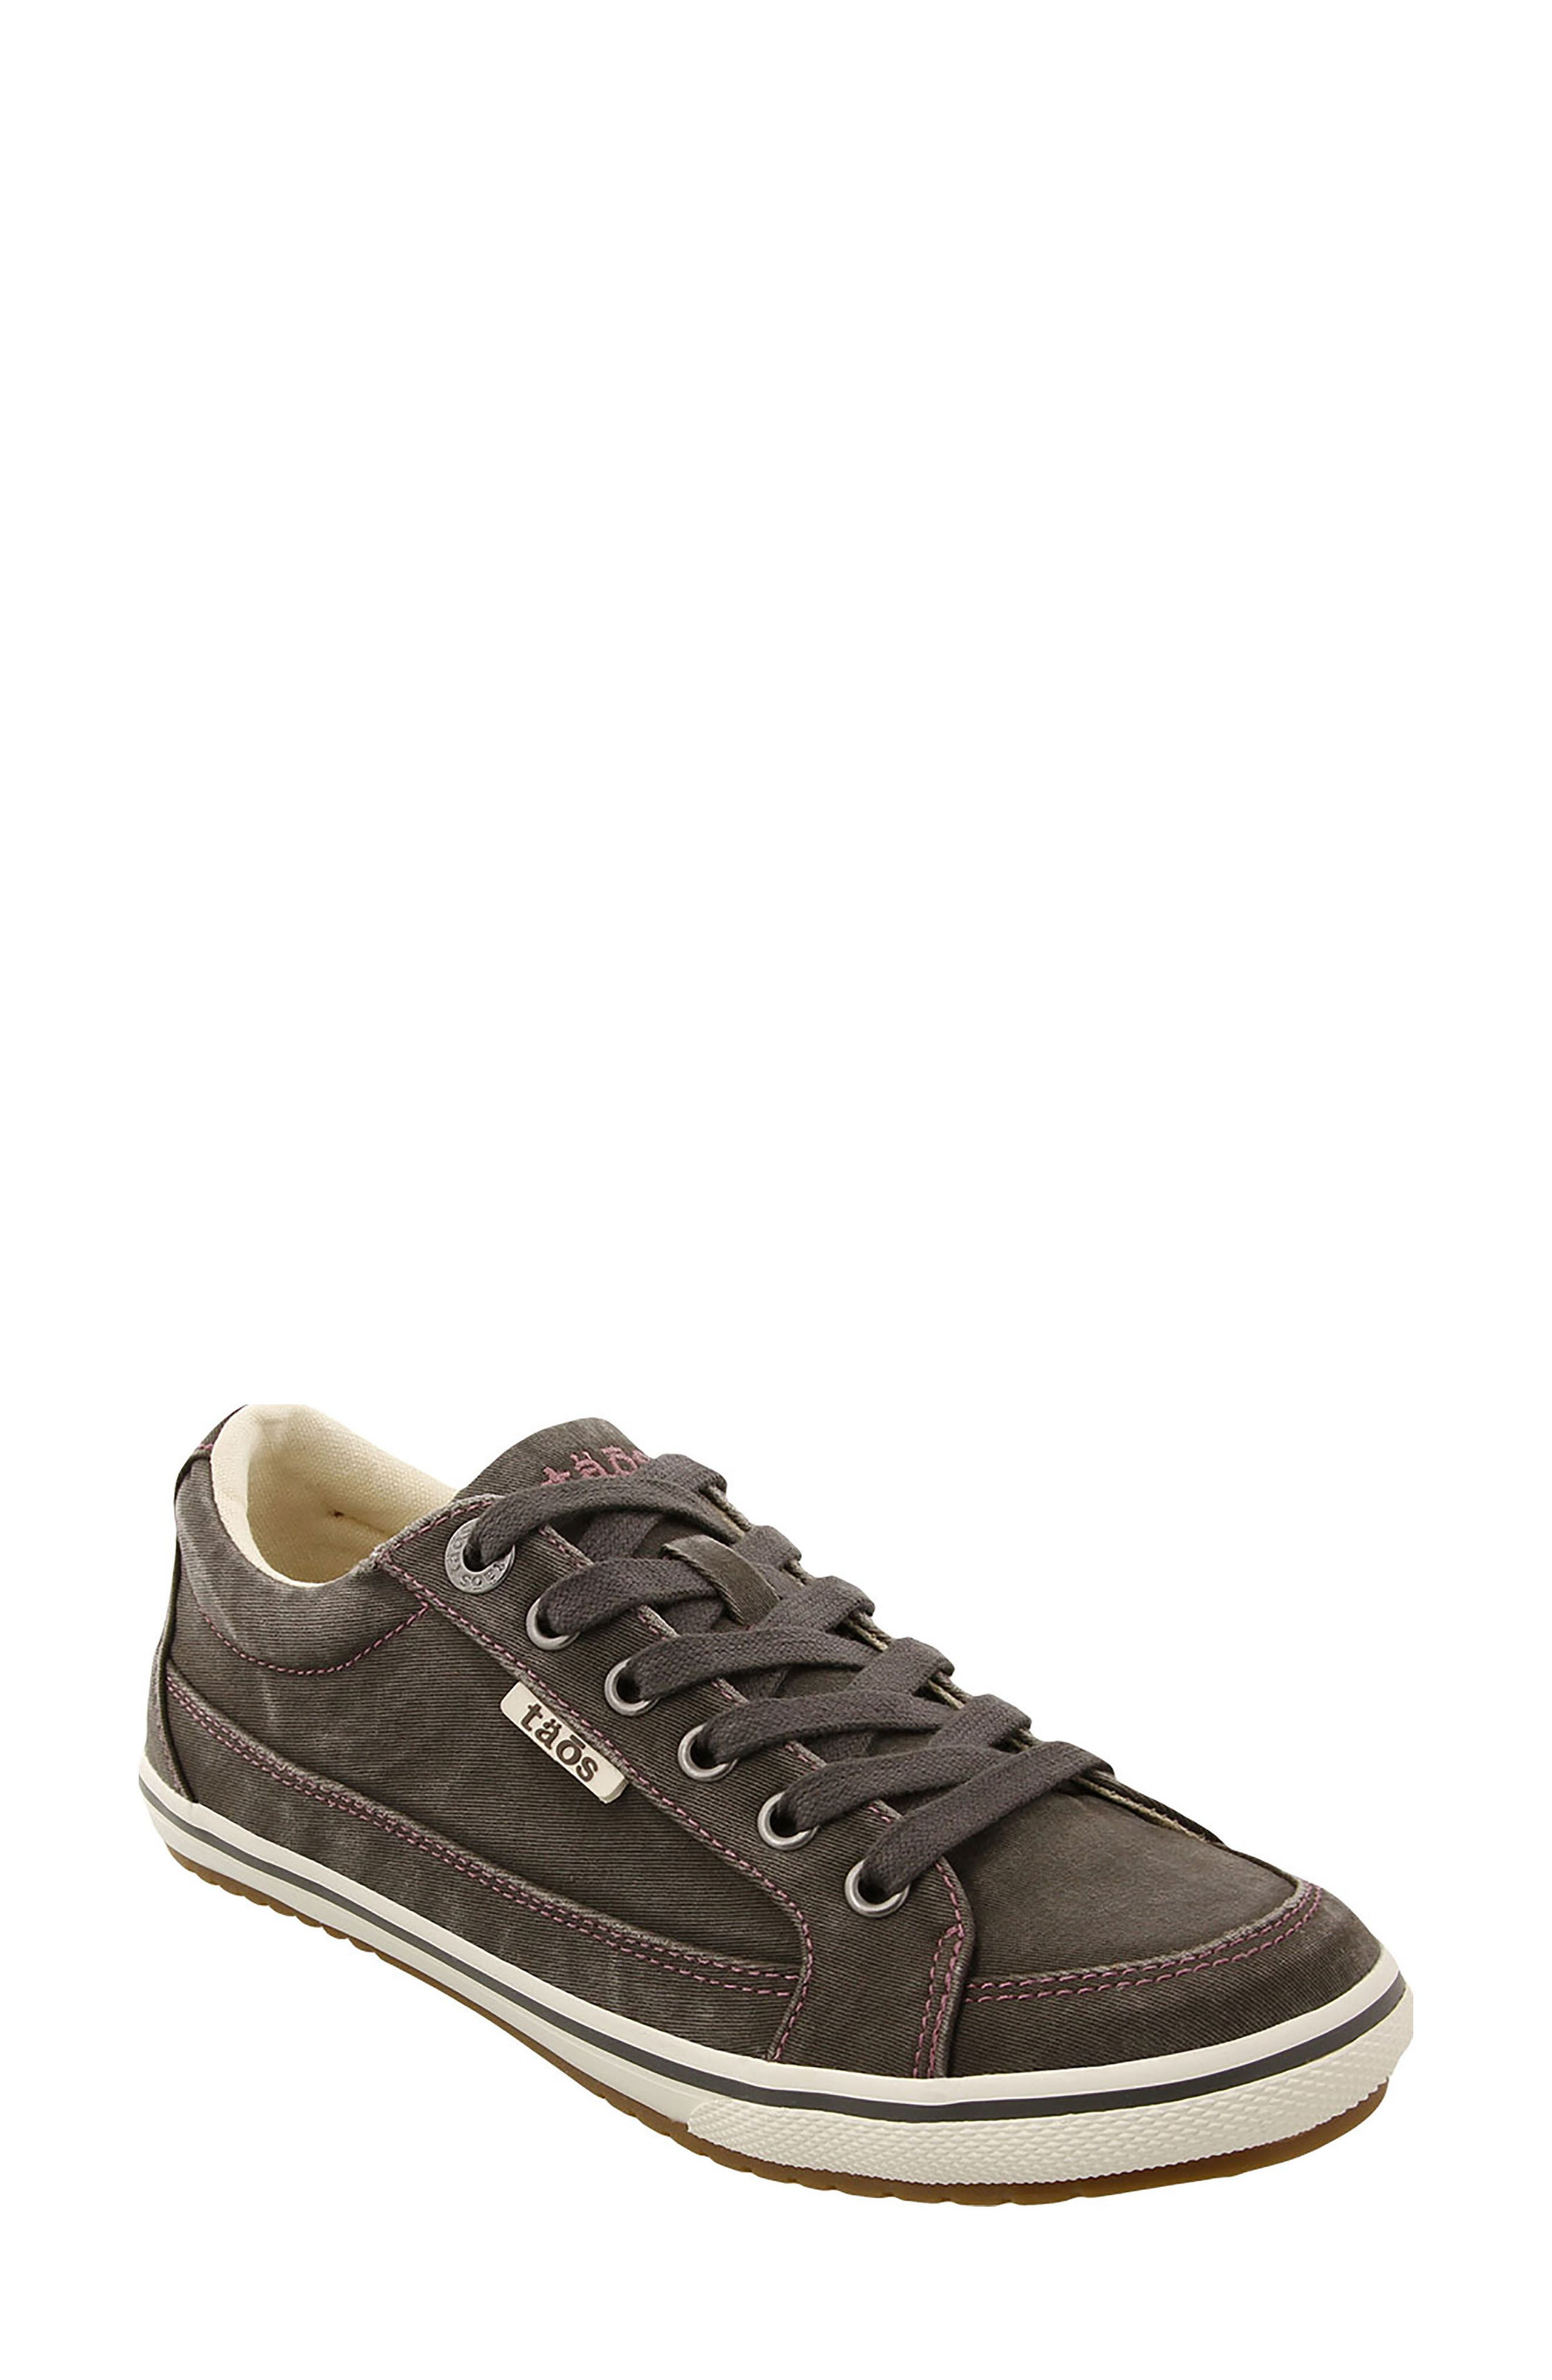 Moc Star Sneaker,                         Main,                         color, GRAPHITE DISTRESSED